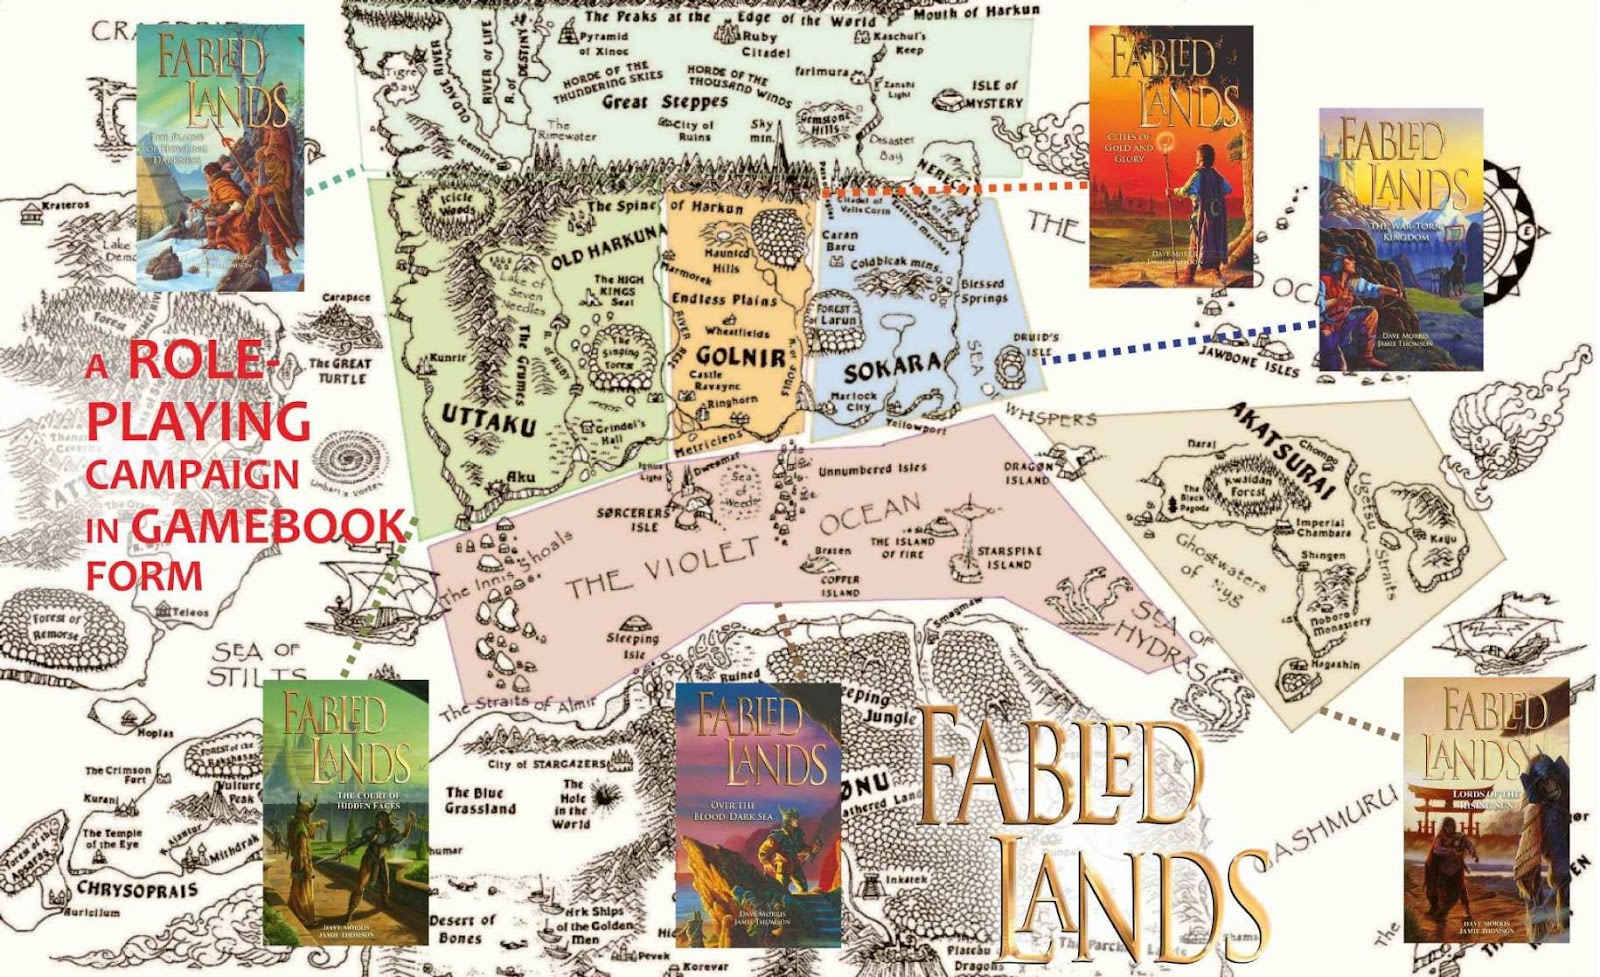 Fabled-Lands-infographic.jpg